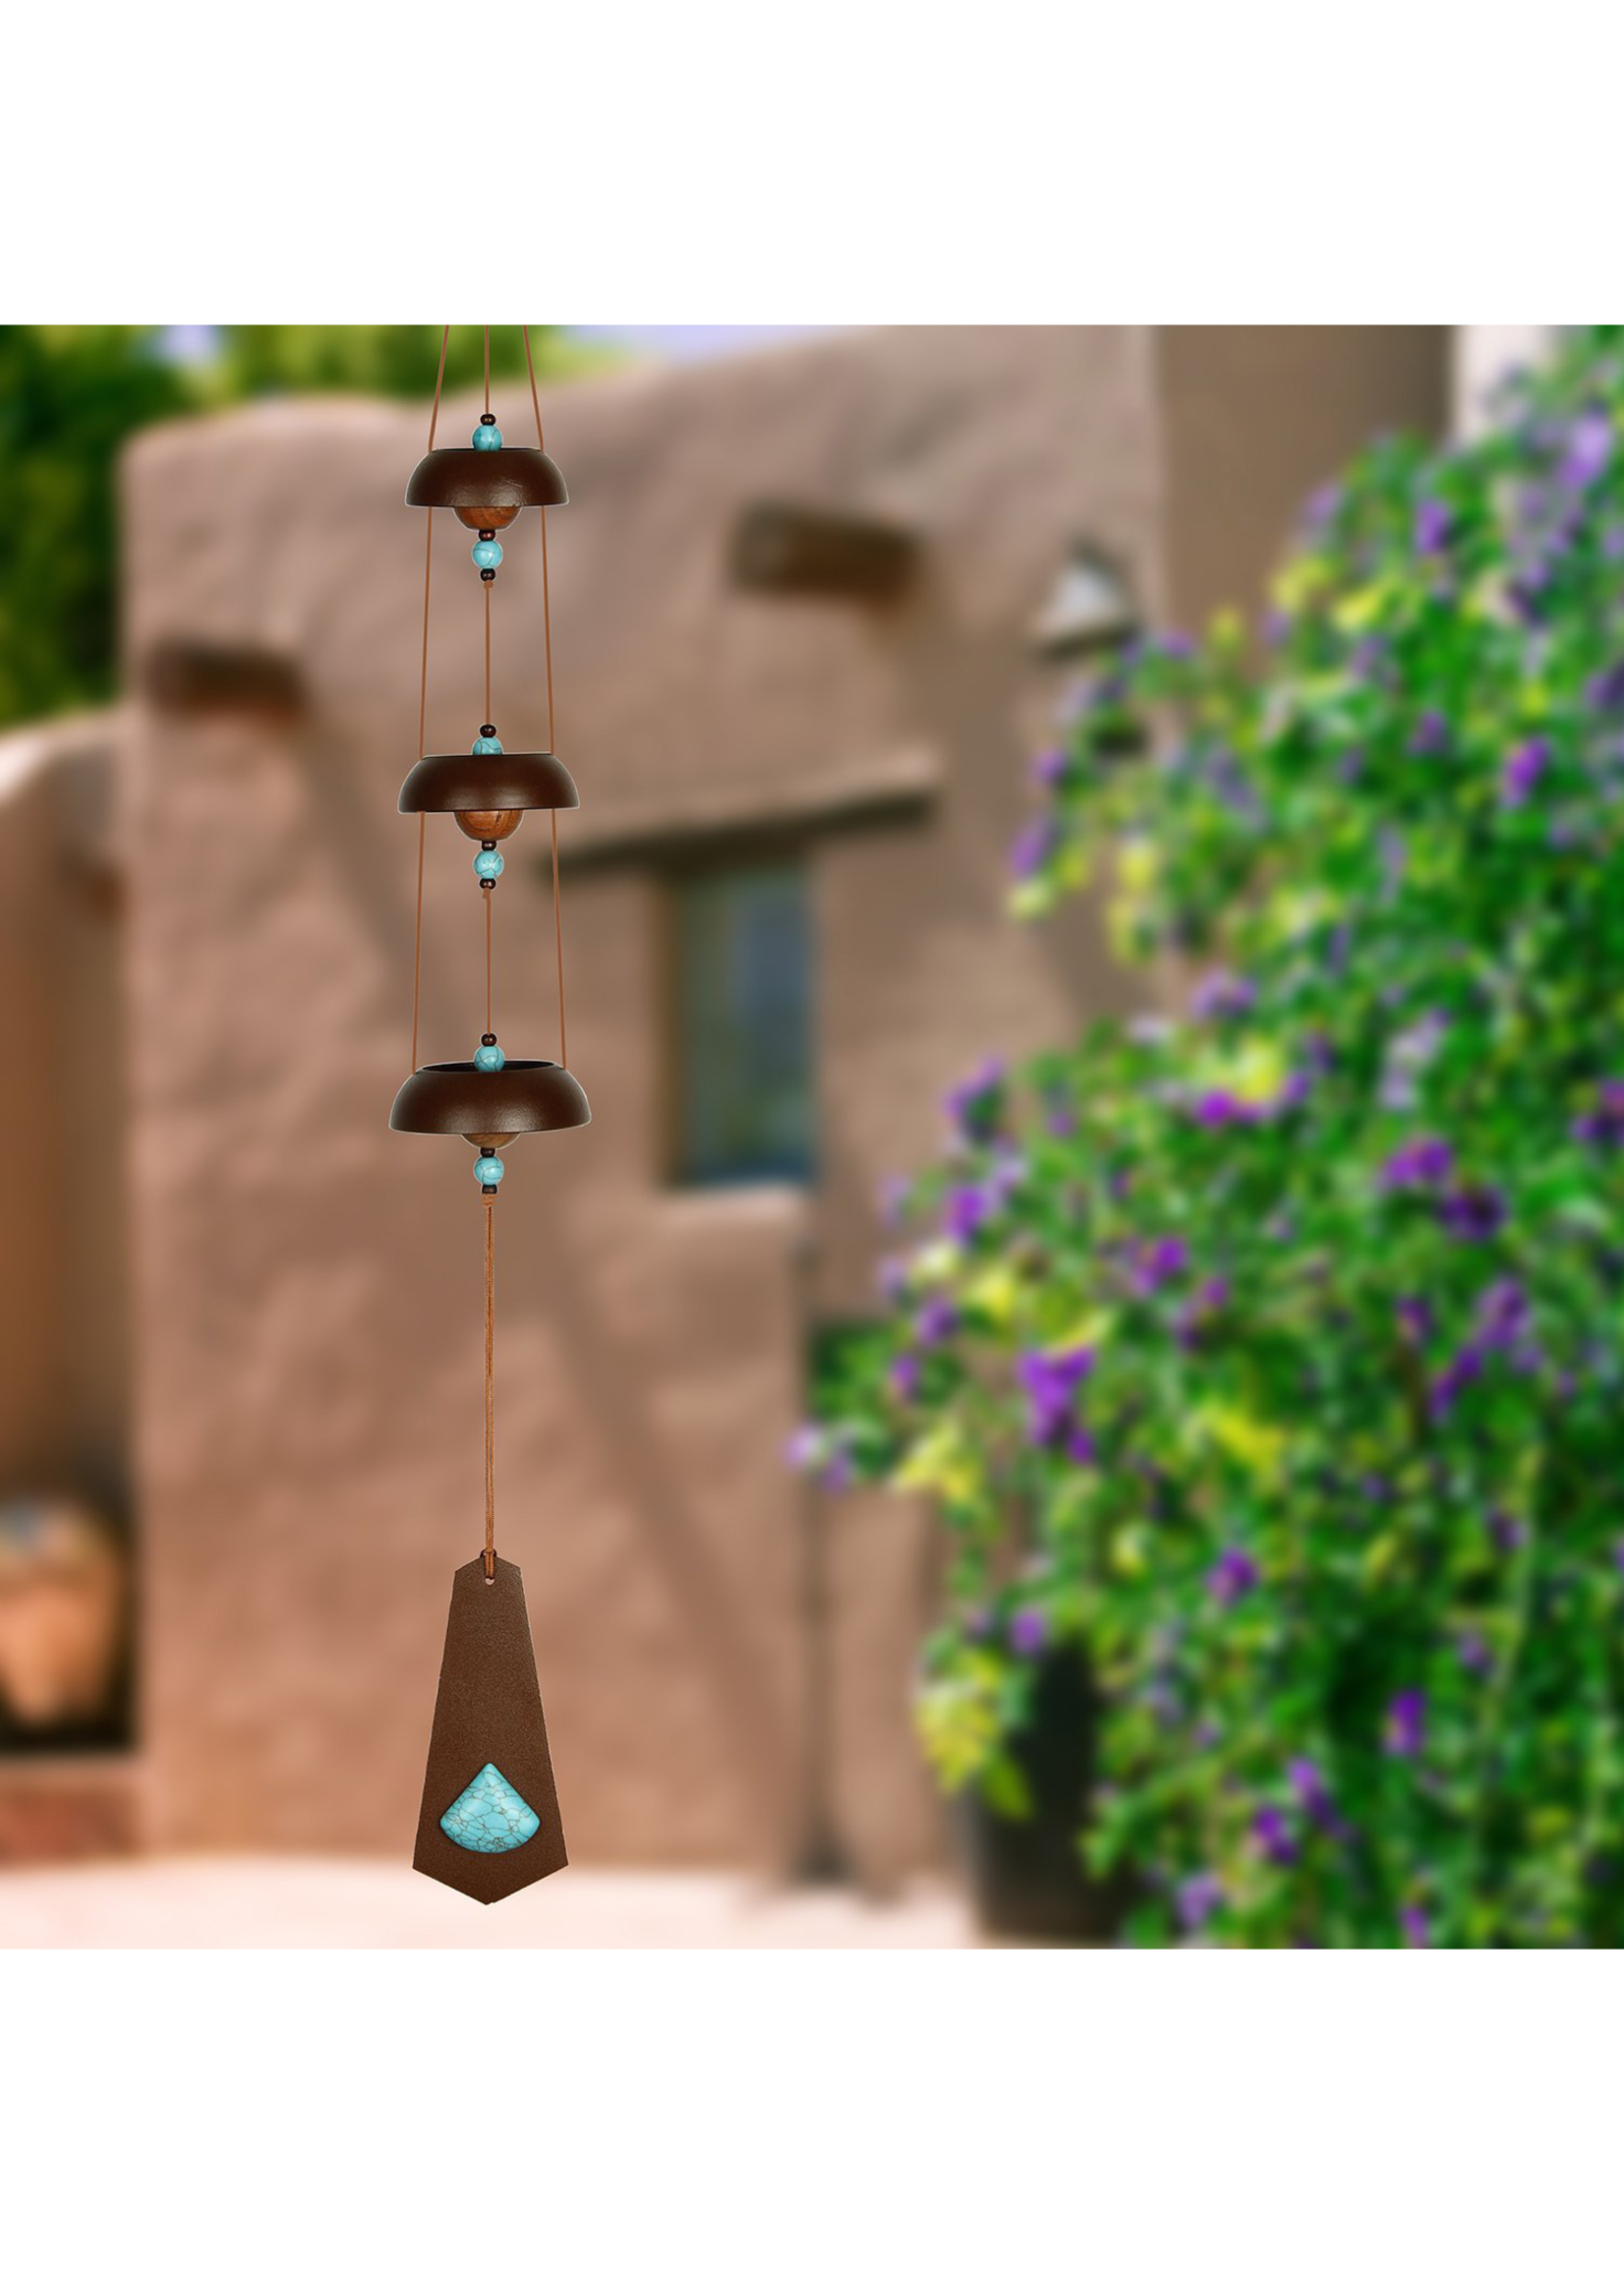 Woodstock Chimes Temple Bells, Rustic - Turquoise